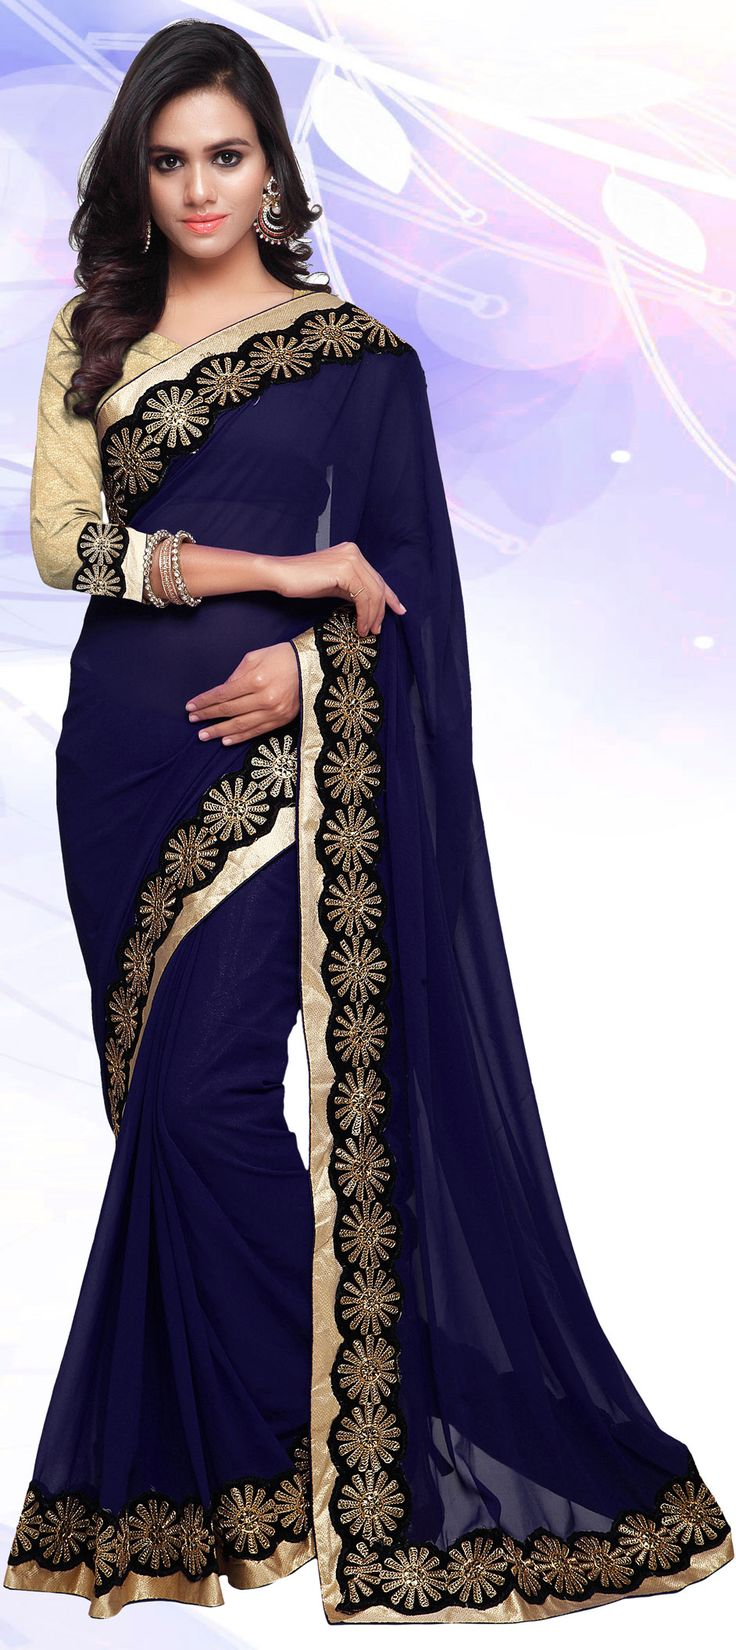 183187: Blue color family Embroidered Sarees, Party Wear Sarees with matching unstitched blouse.